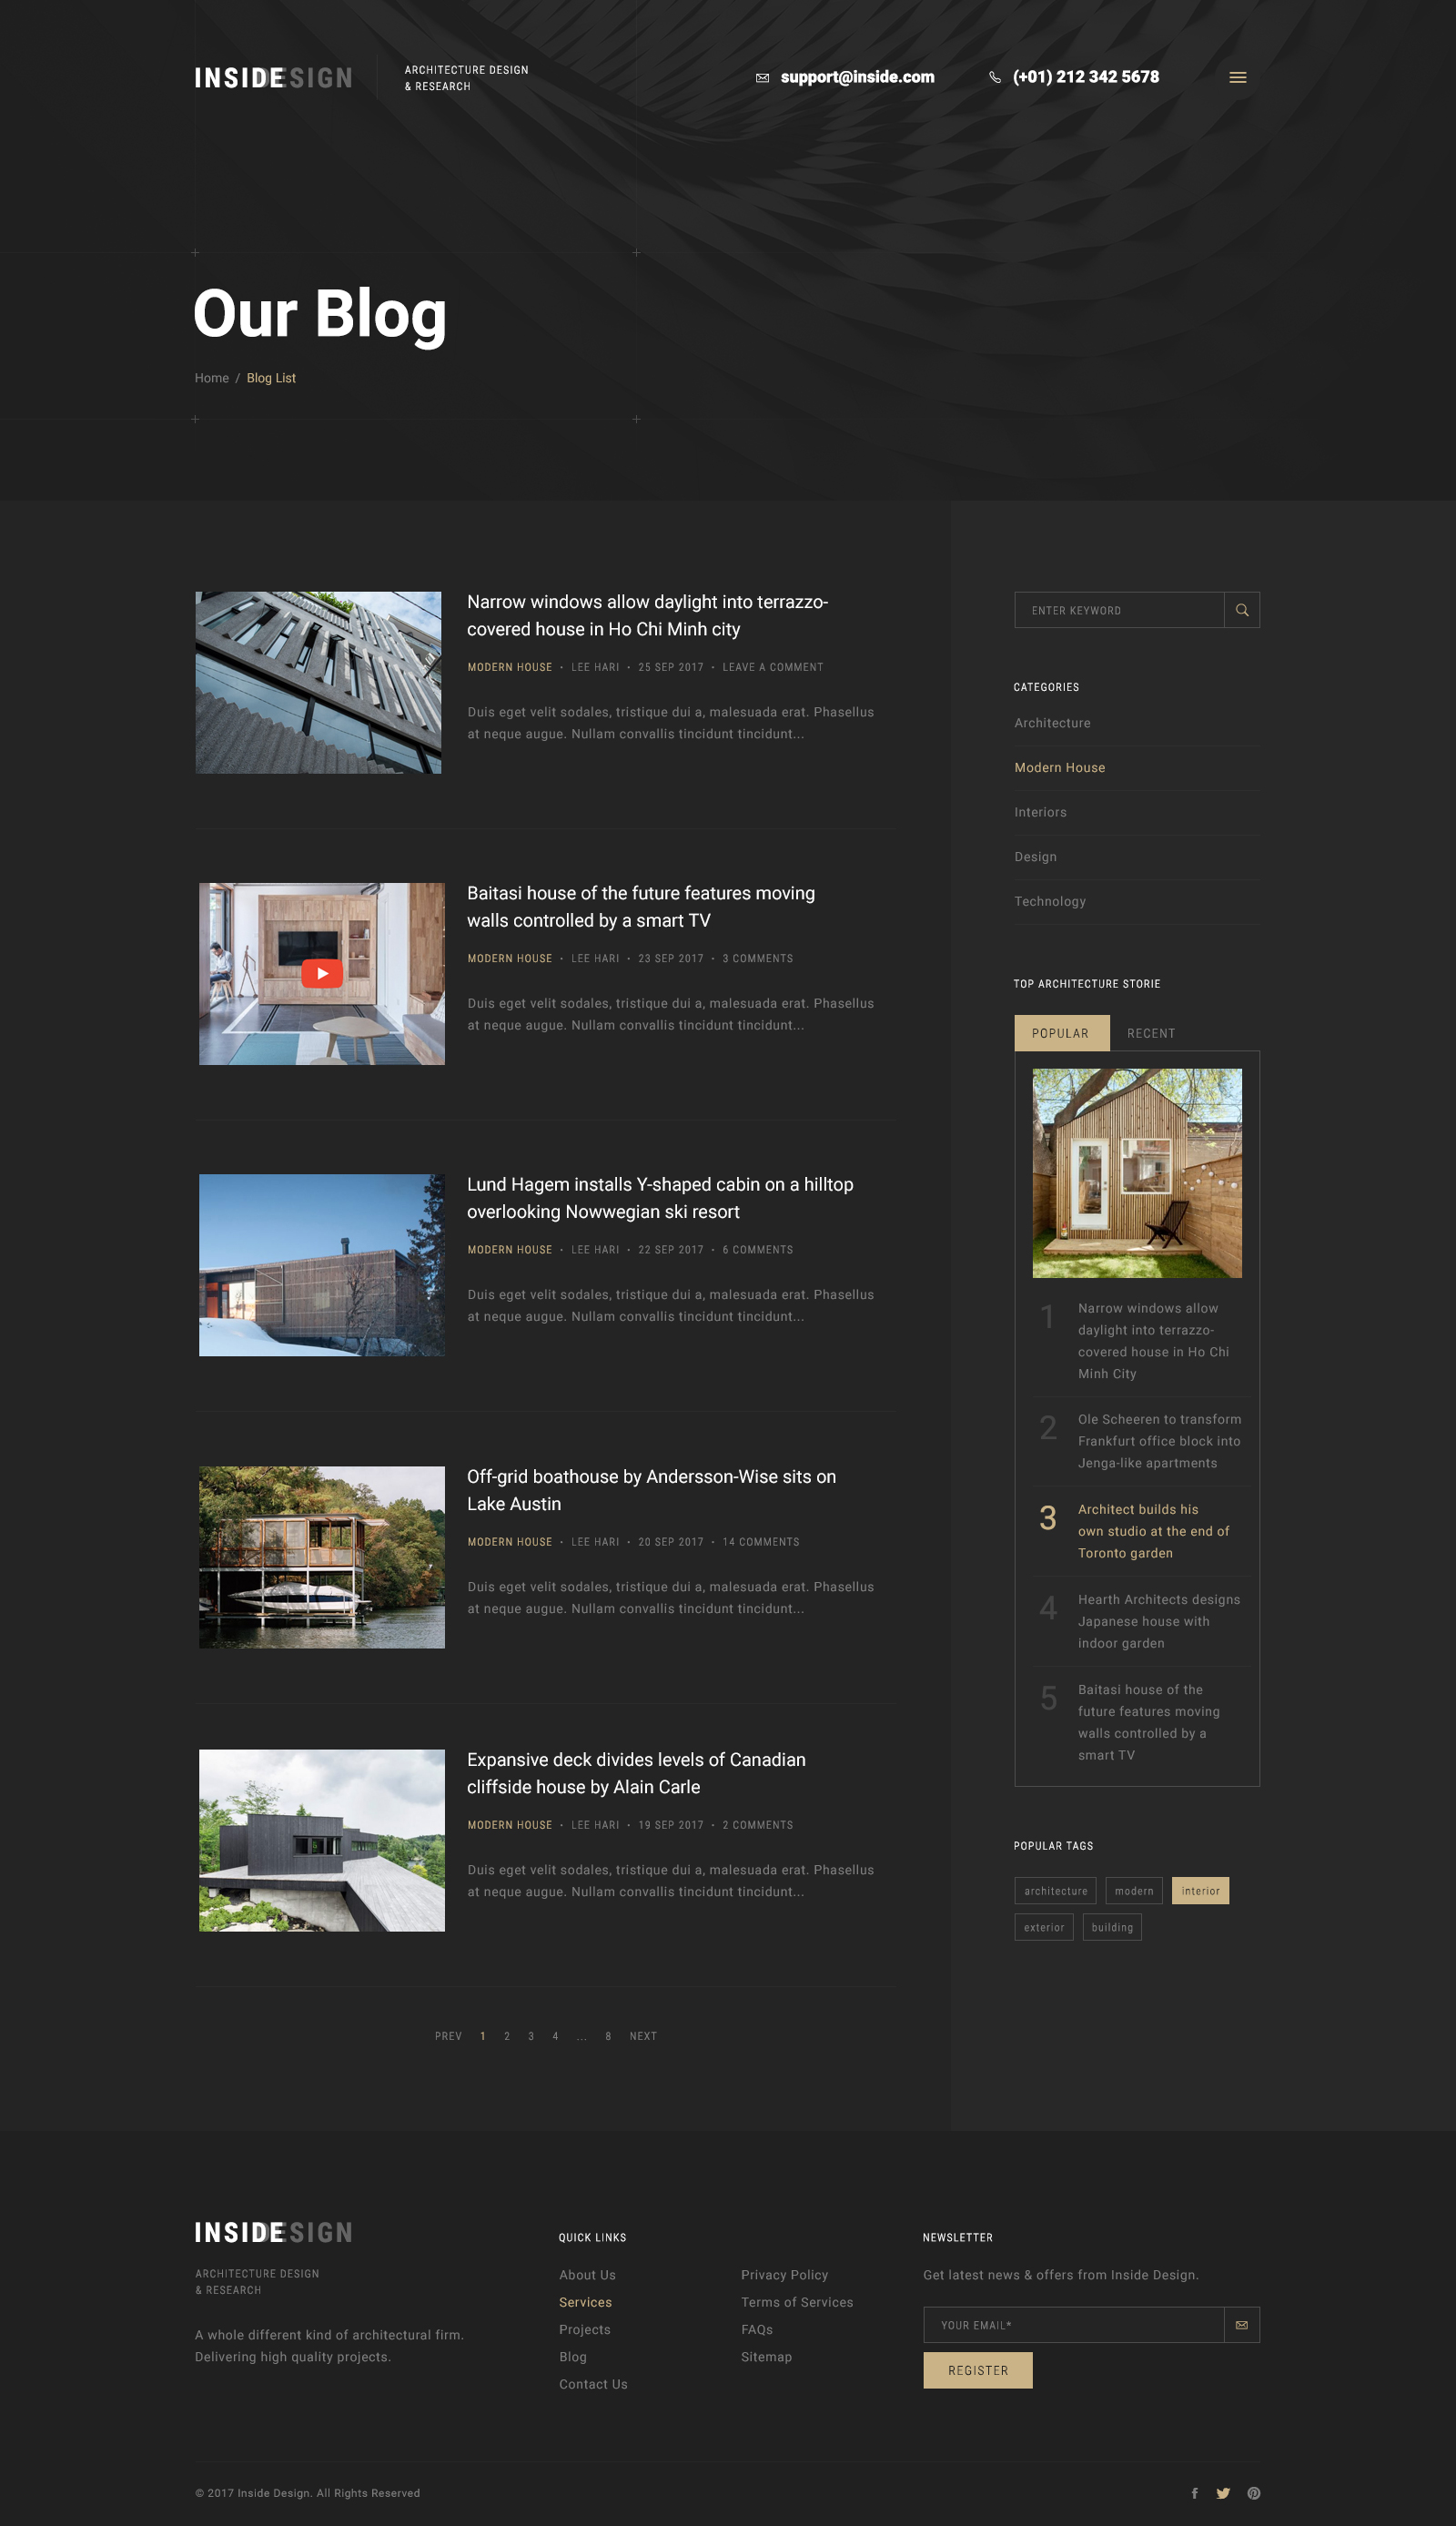 Inside an elegant architecture psd template by leehari themeforest inside an elegant architecture psd template sciox Choice Image